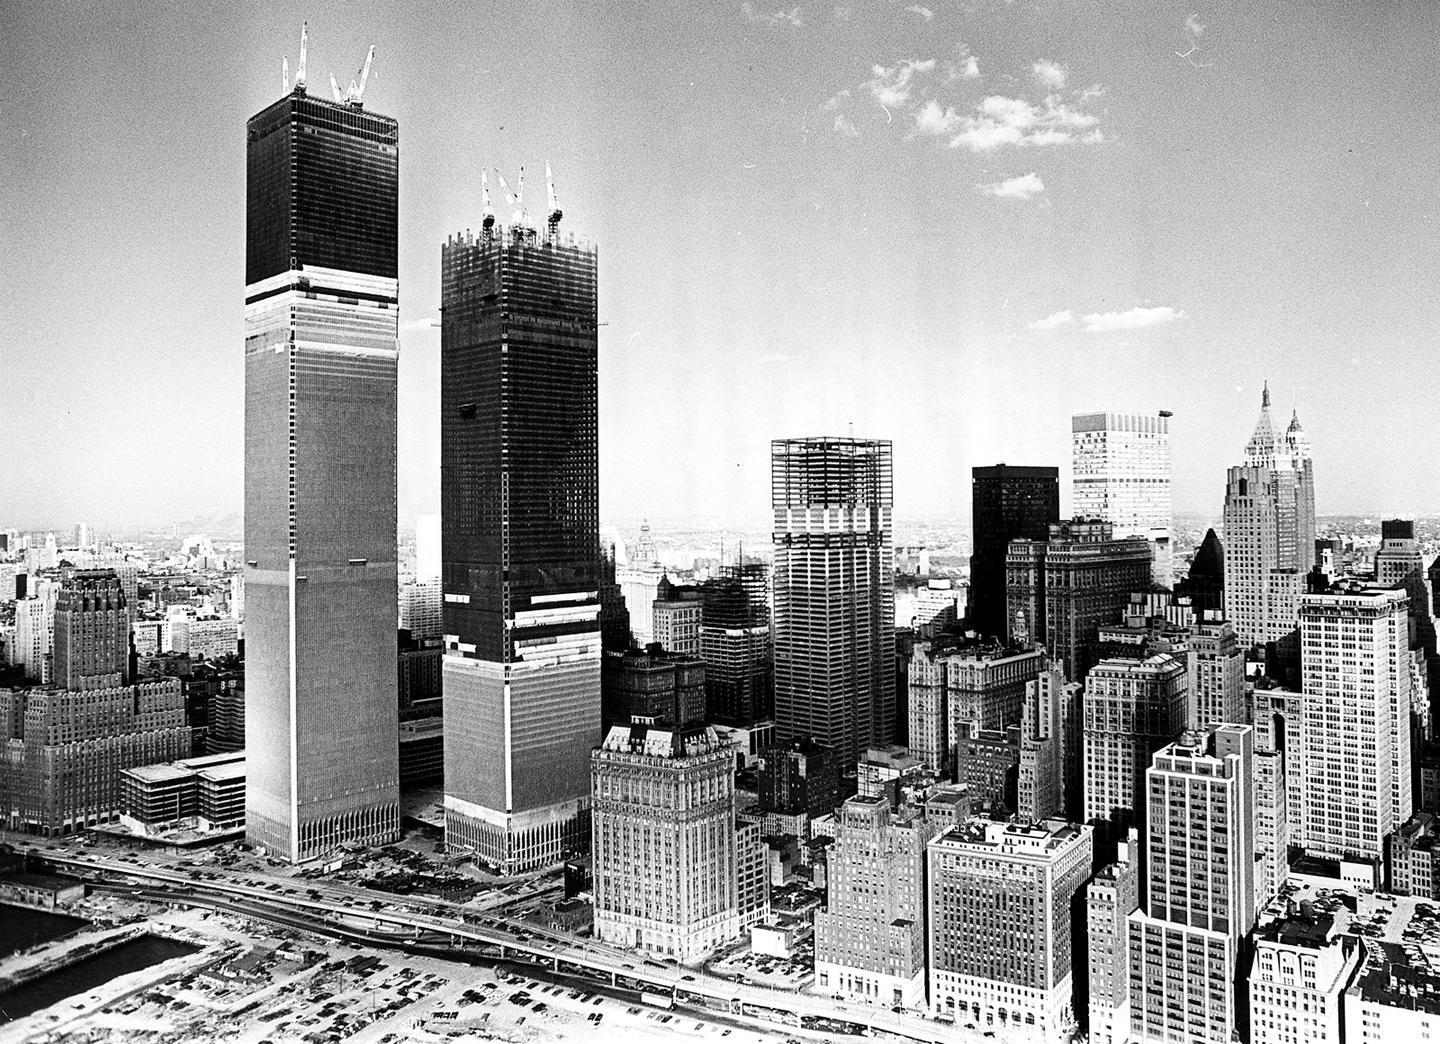 Construction of the Twin Towers - NYC - Early 1970s